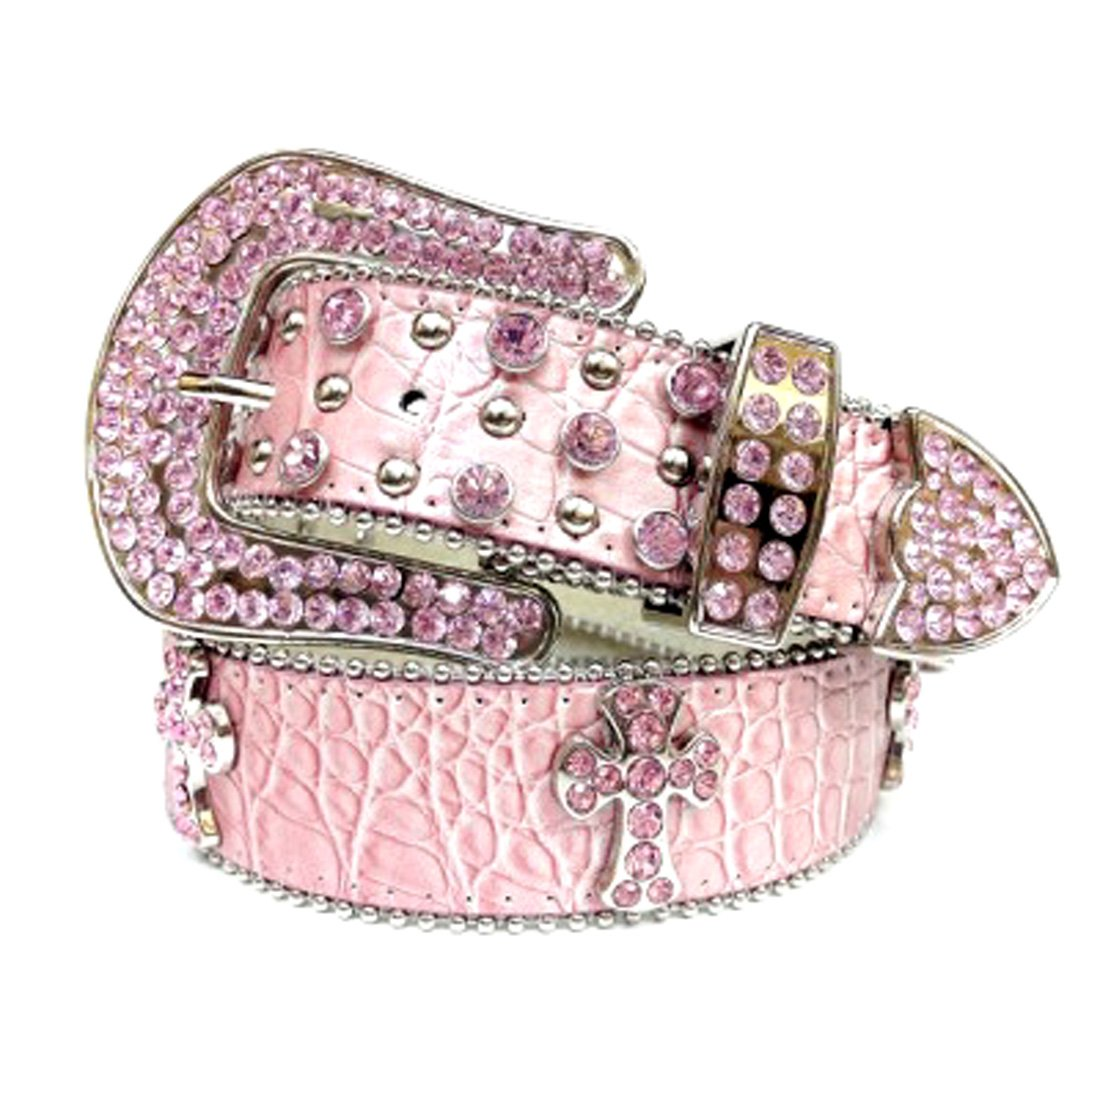 Pink Leather Belt in a Crocodile Pattern, Decorated in Pink Crystals on Silver Crosses, Size S/M